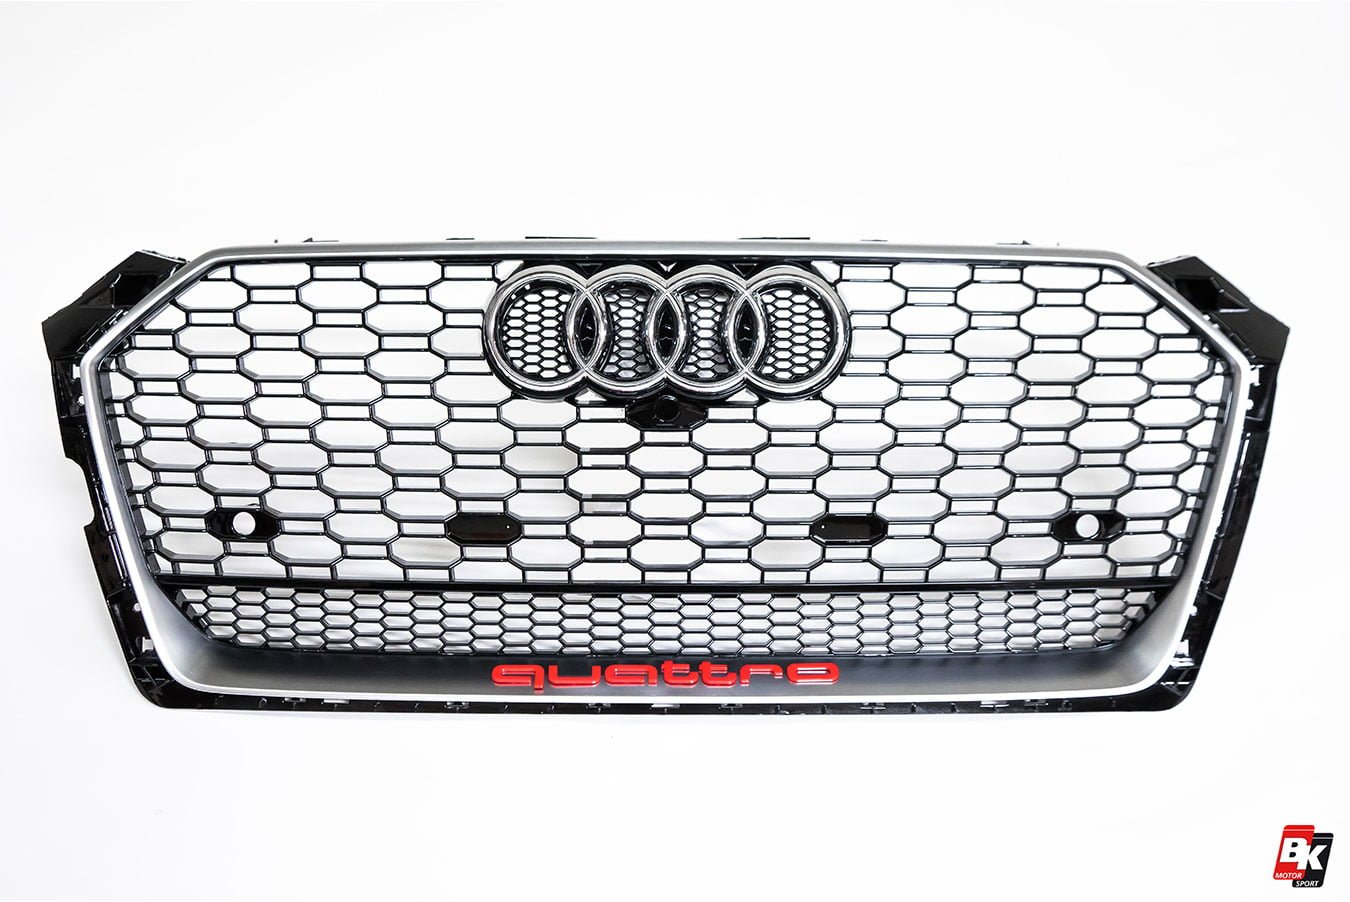 BKM Front Grille with Silver Frame (RS5 Style), fits Audi